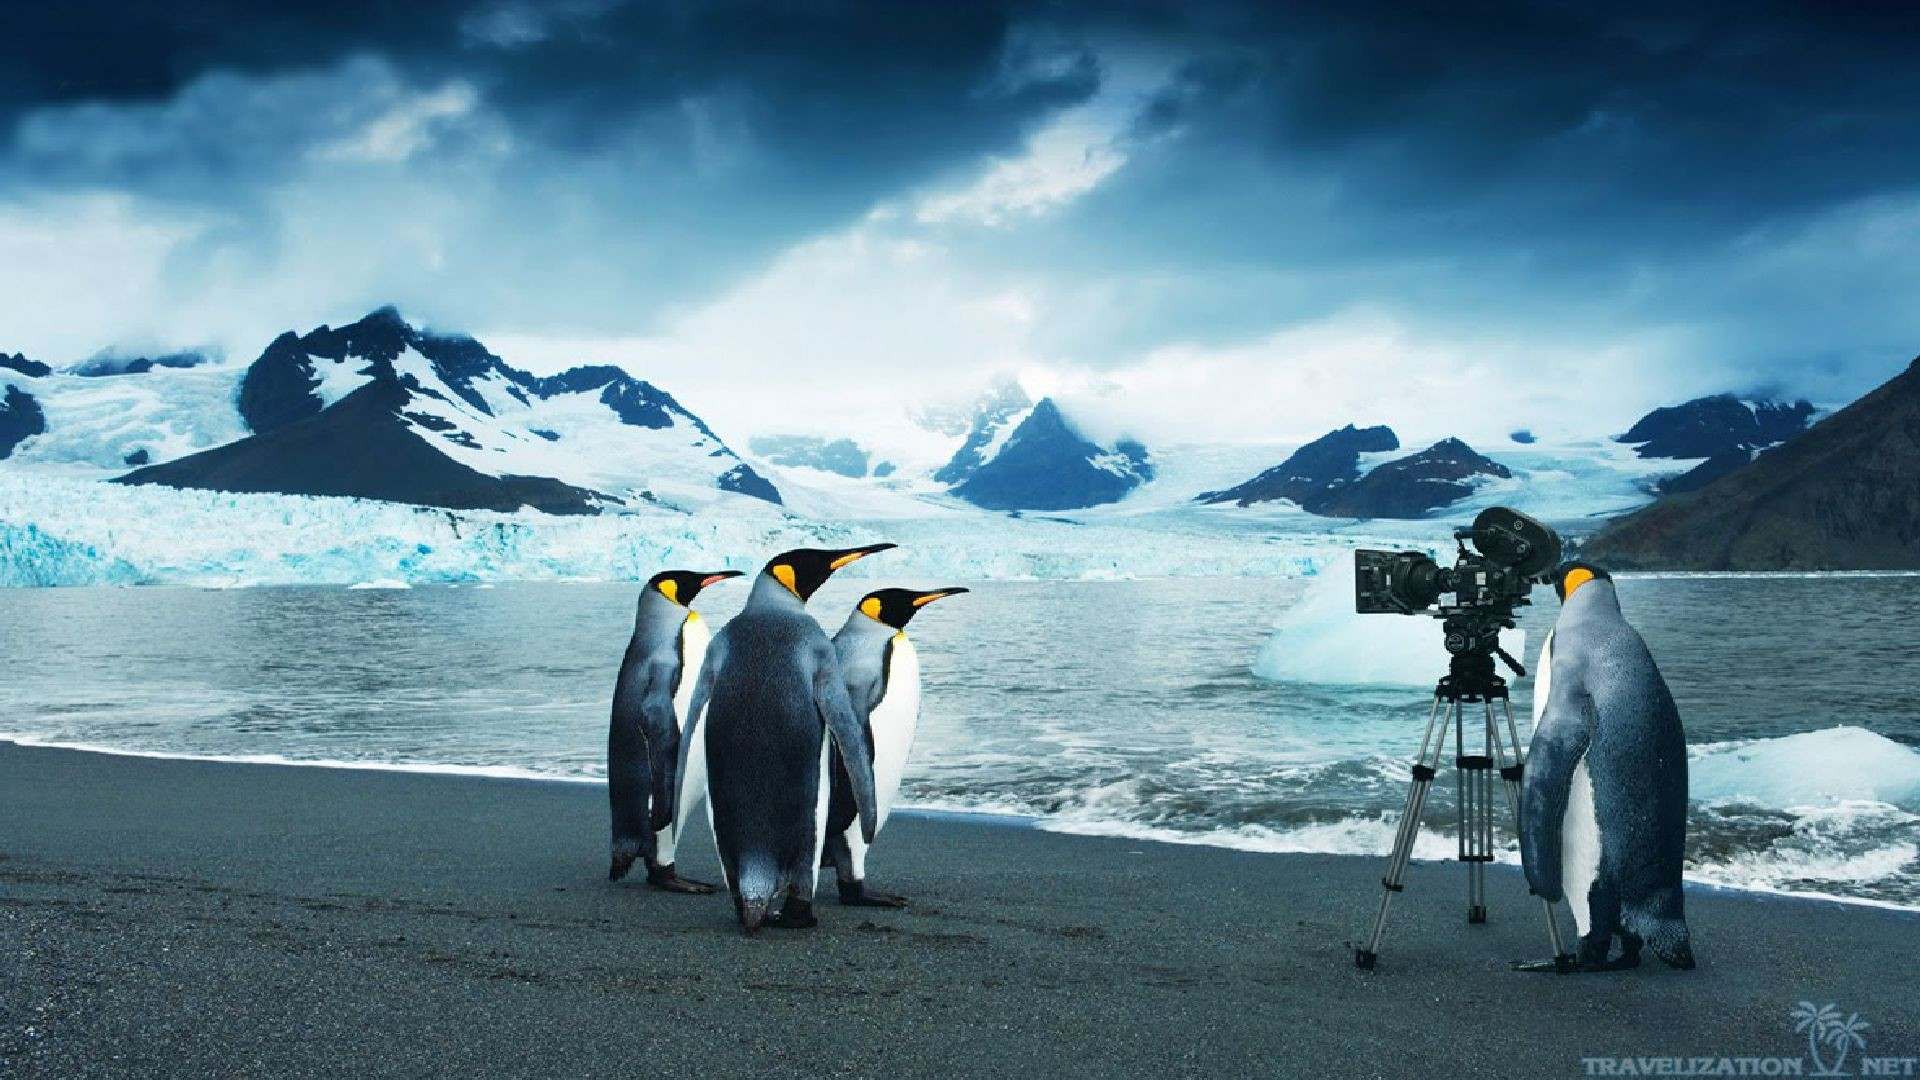 Cute Penguins Iphone Wallpaper Moving Penguin Wallpapers 52 Images